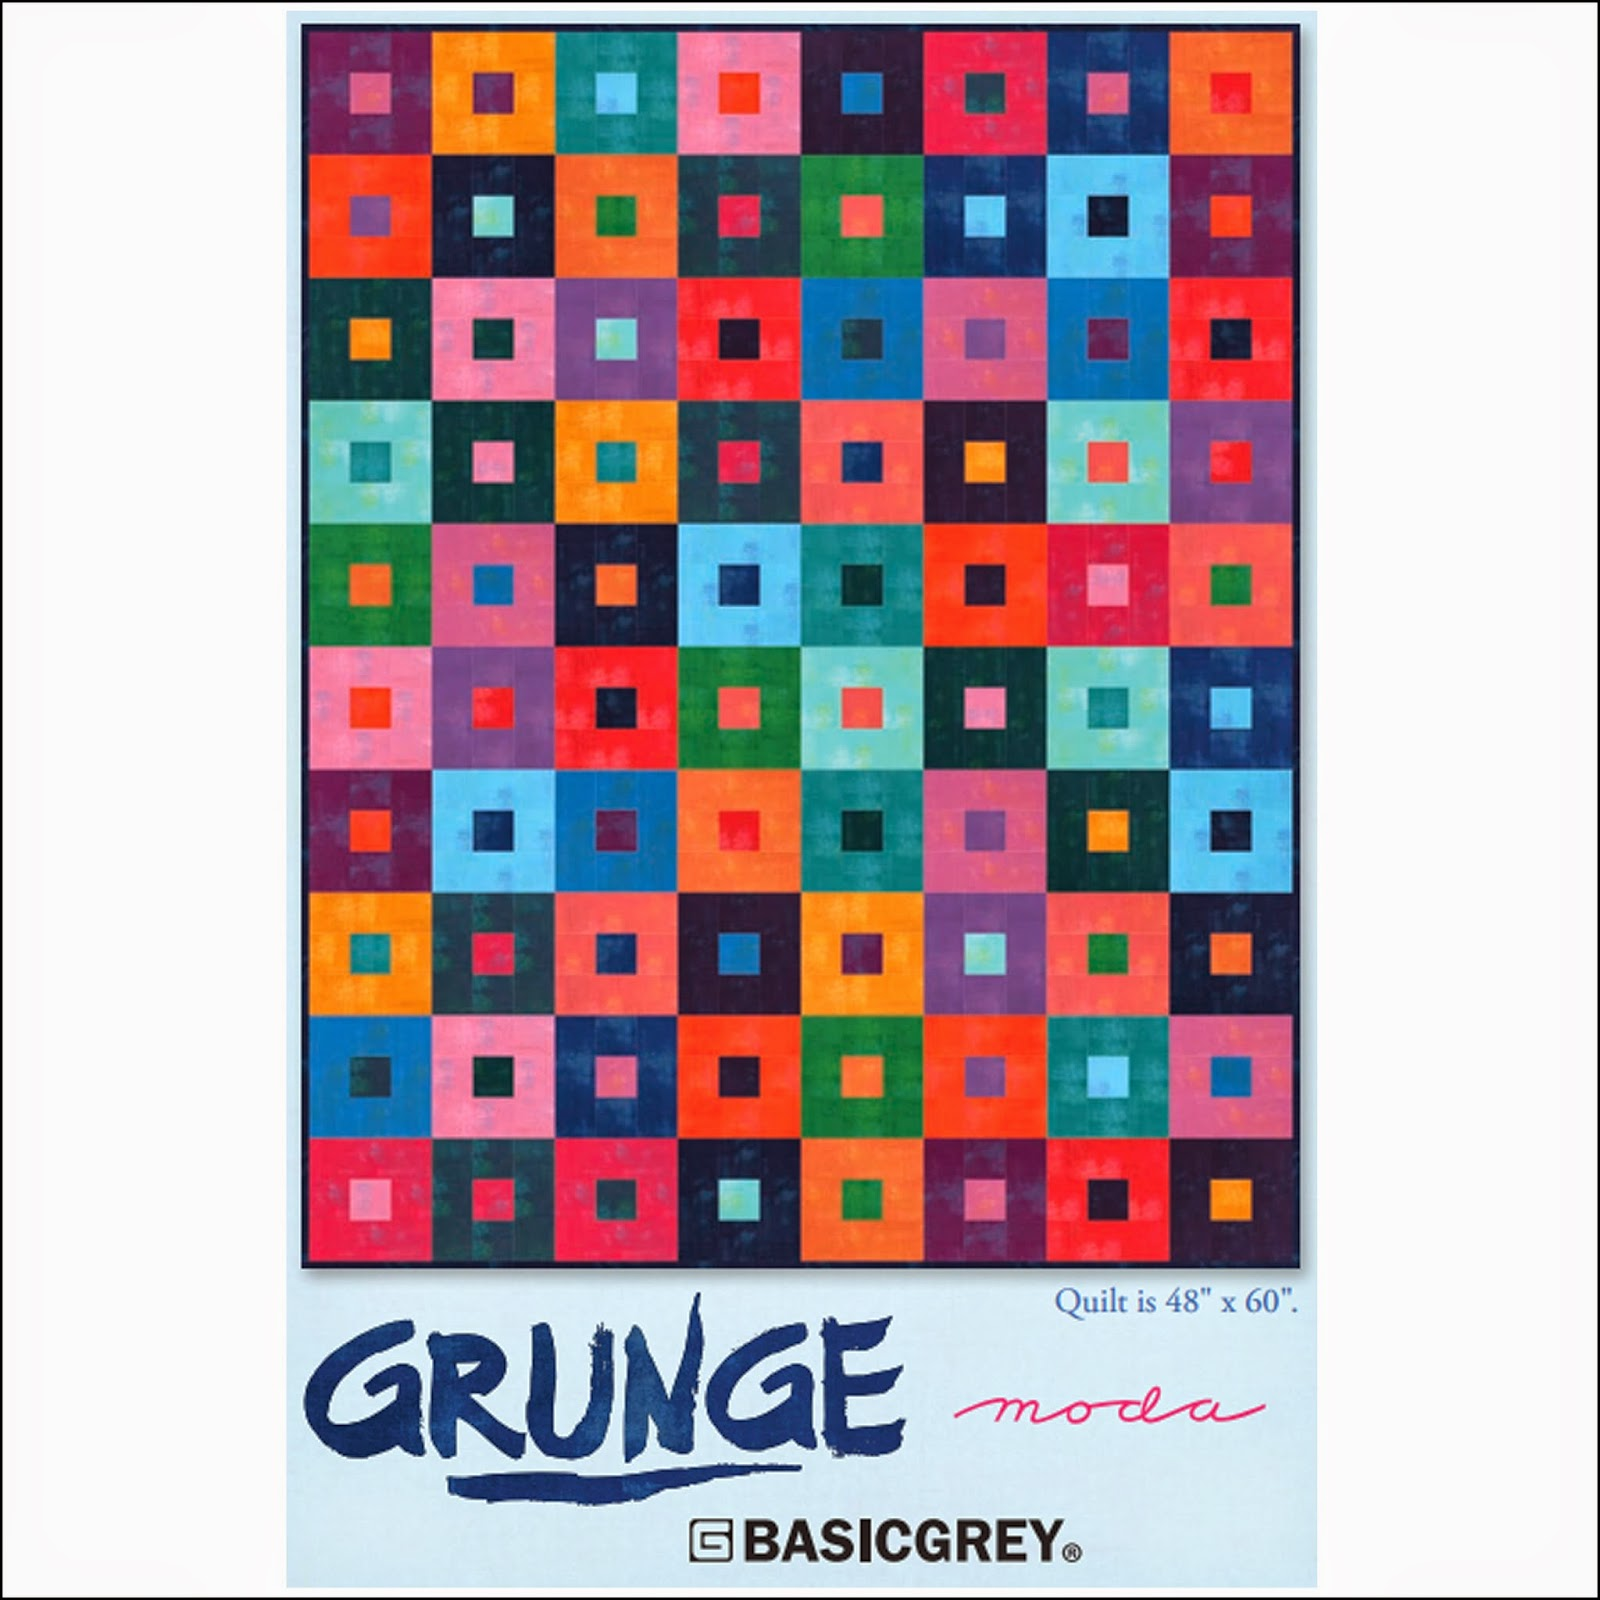 Moda GRUNGE Free Quilt Pattern using Moda GRUNGE Fabric by Basic Grey